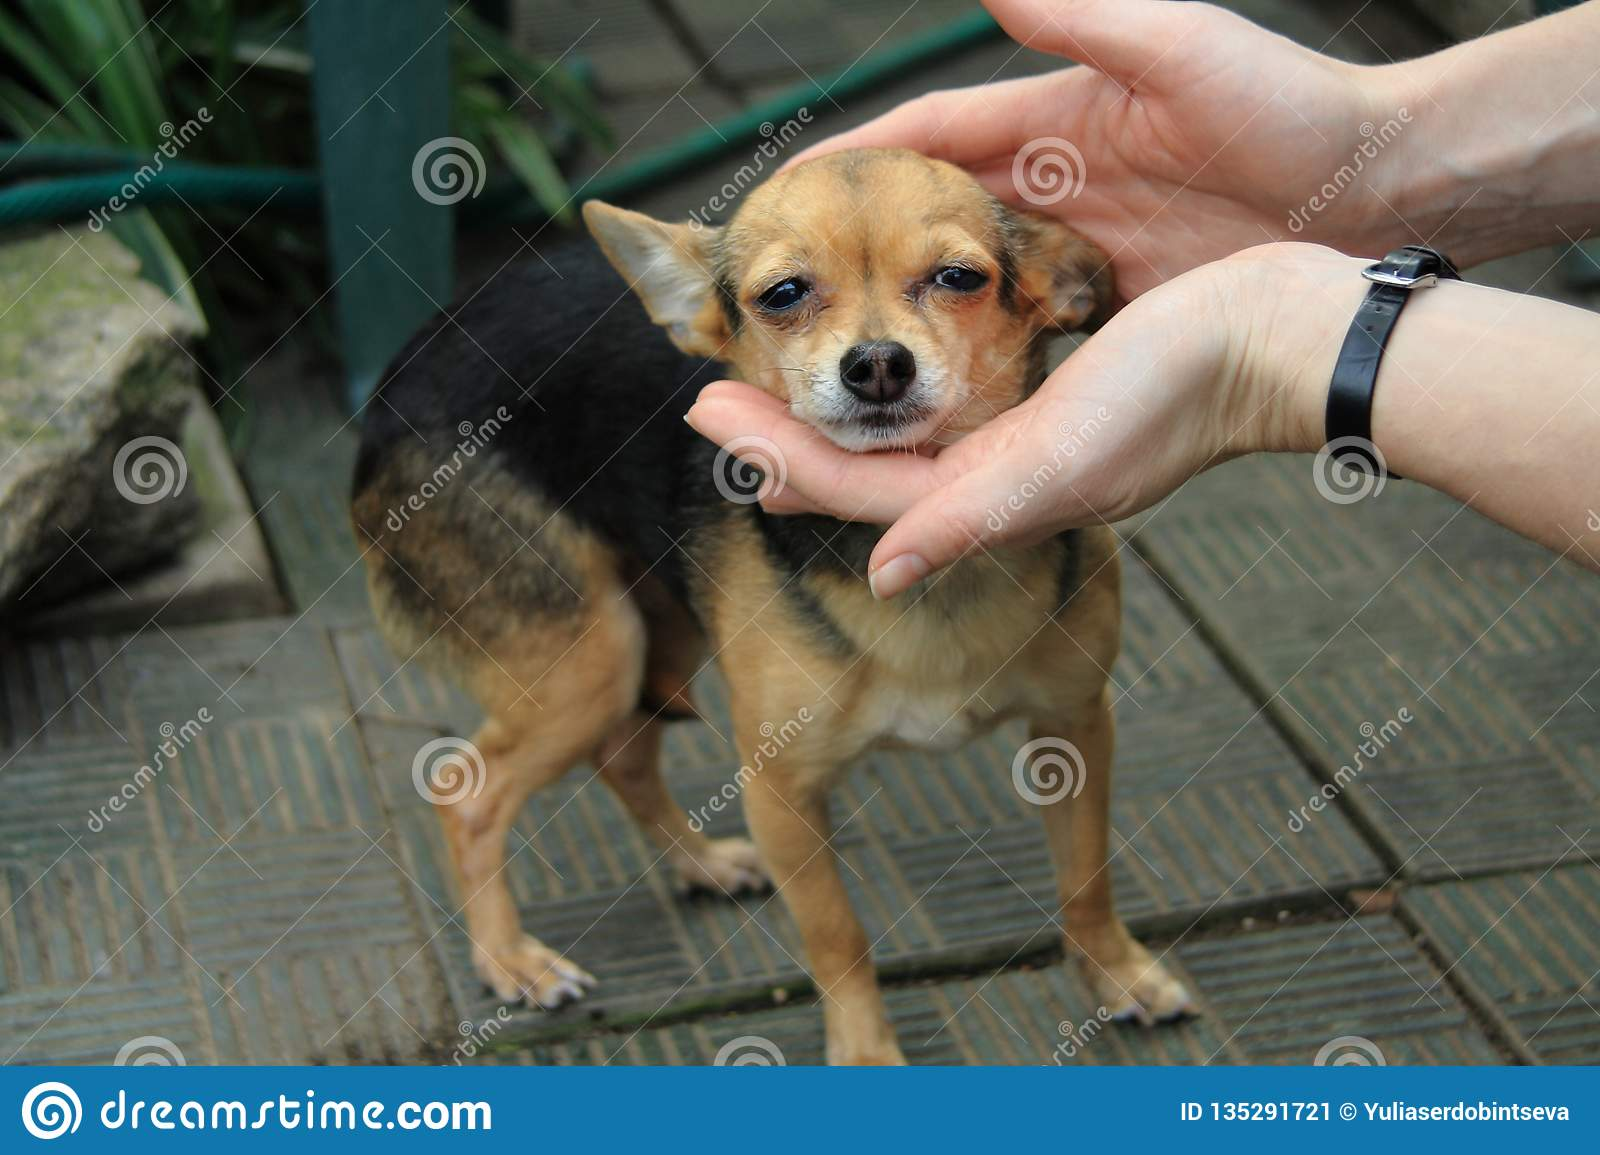 Woman holding the head of a cute little dog